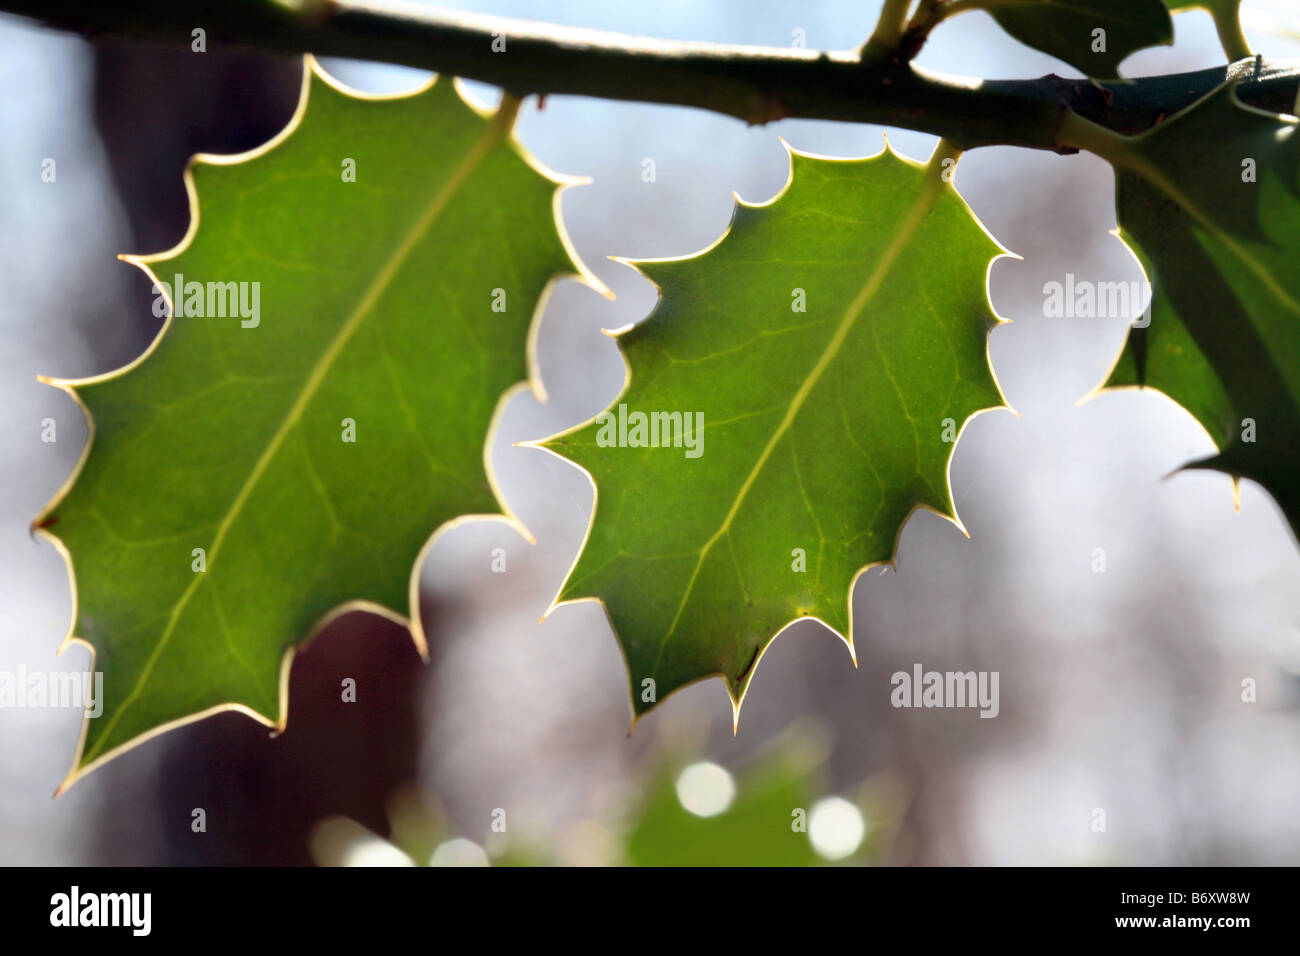 holly tree leaves - Stock Image